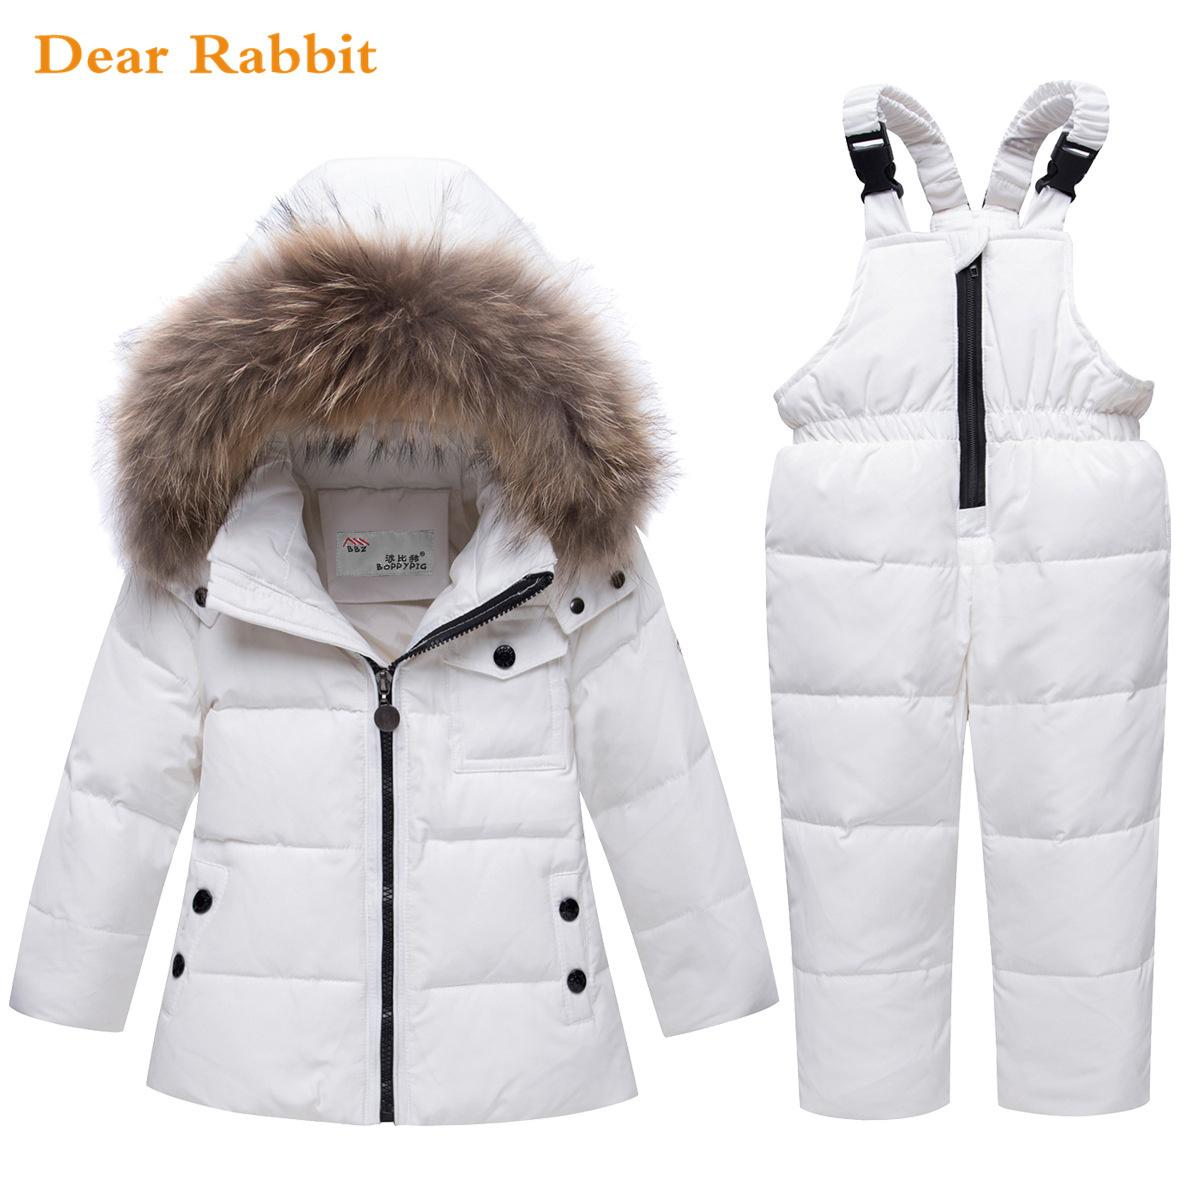 55dfb4fc5a0e 2018 New Children Spring Winter Down Jacket Parka Real Fur Boy Baby  Overalls Kids Coat Snowsuit Snow Clothes Girls Clothing Set Boys 3 In 1 Winter  Jacket ...